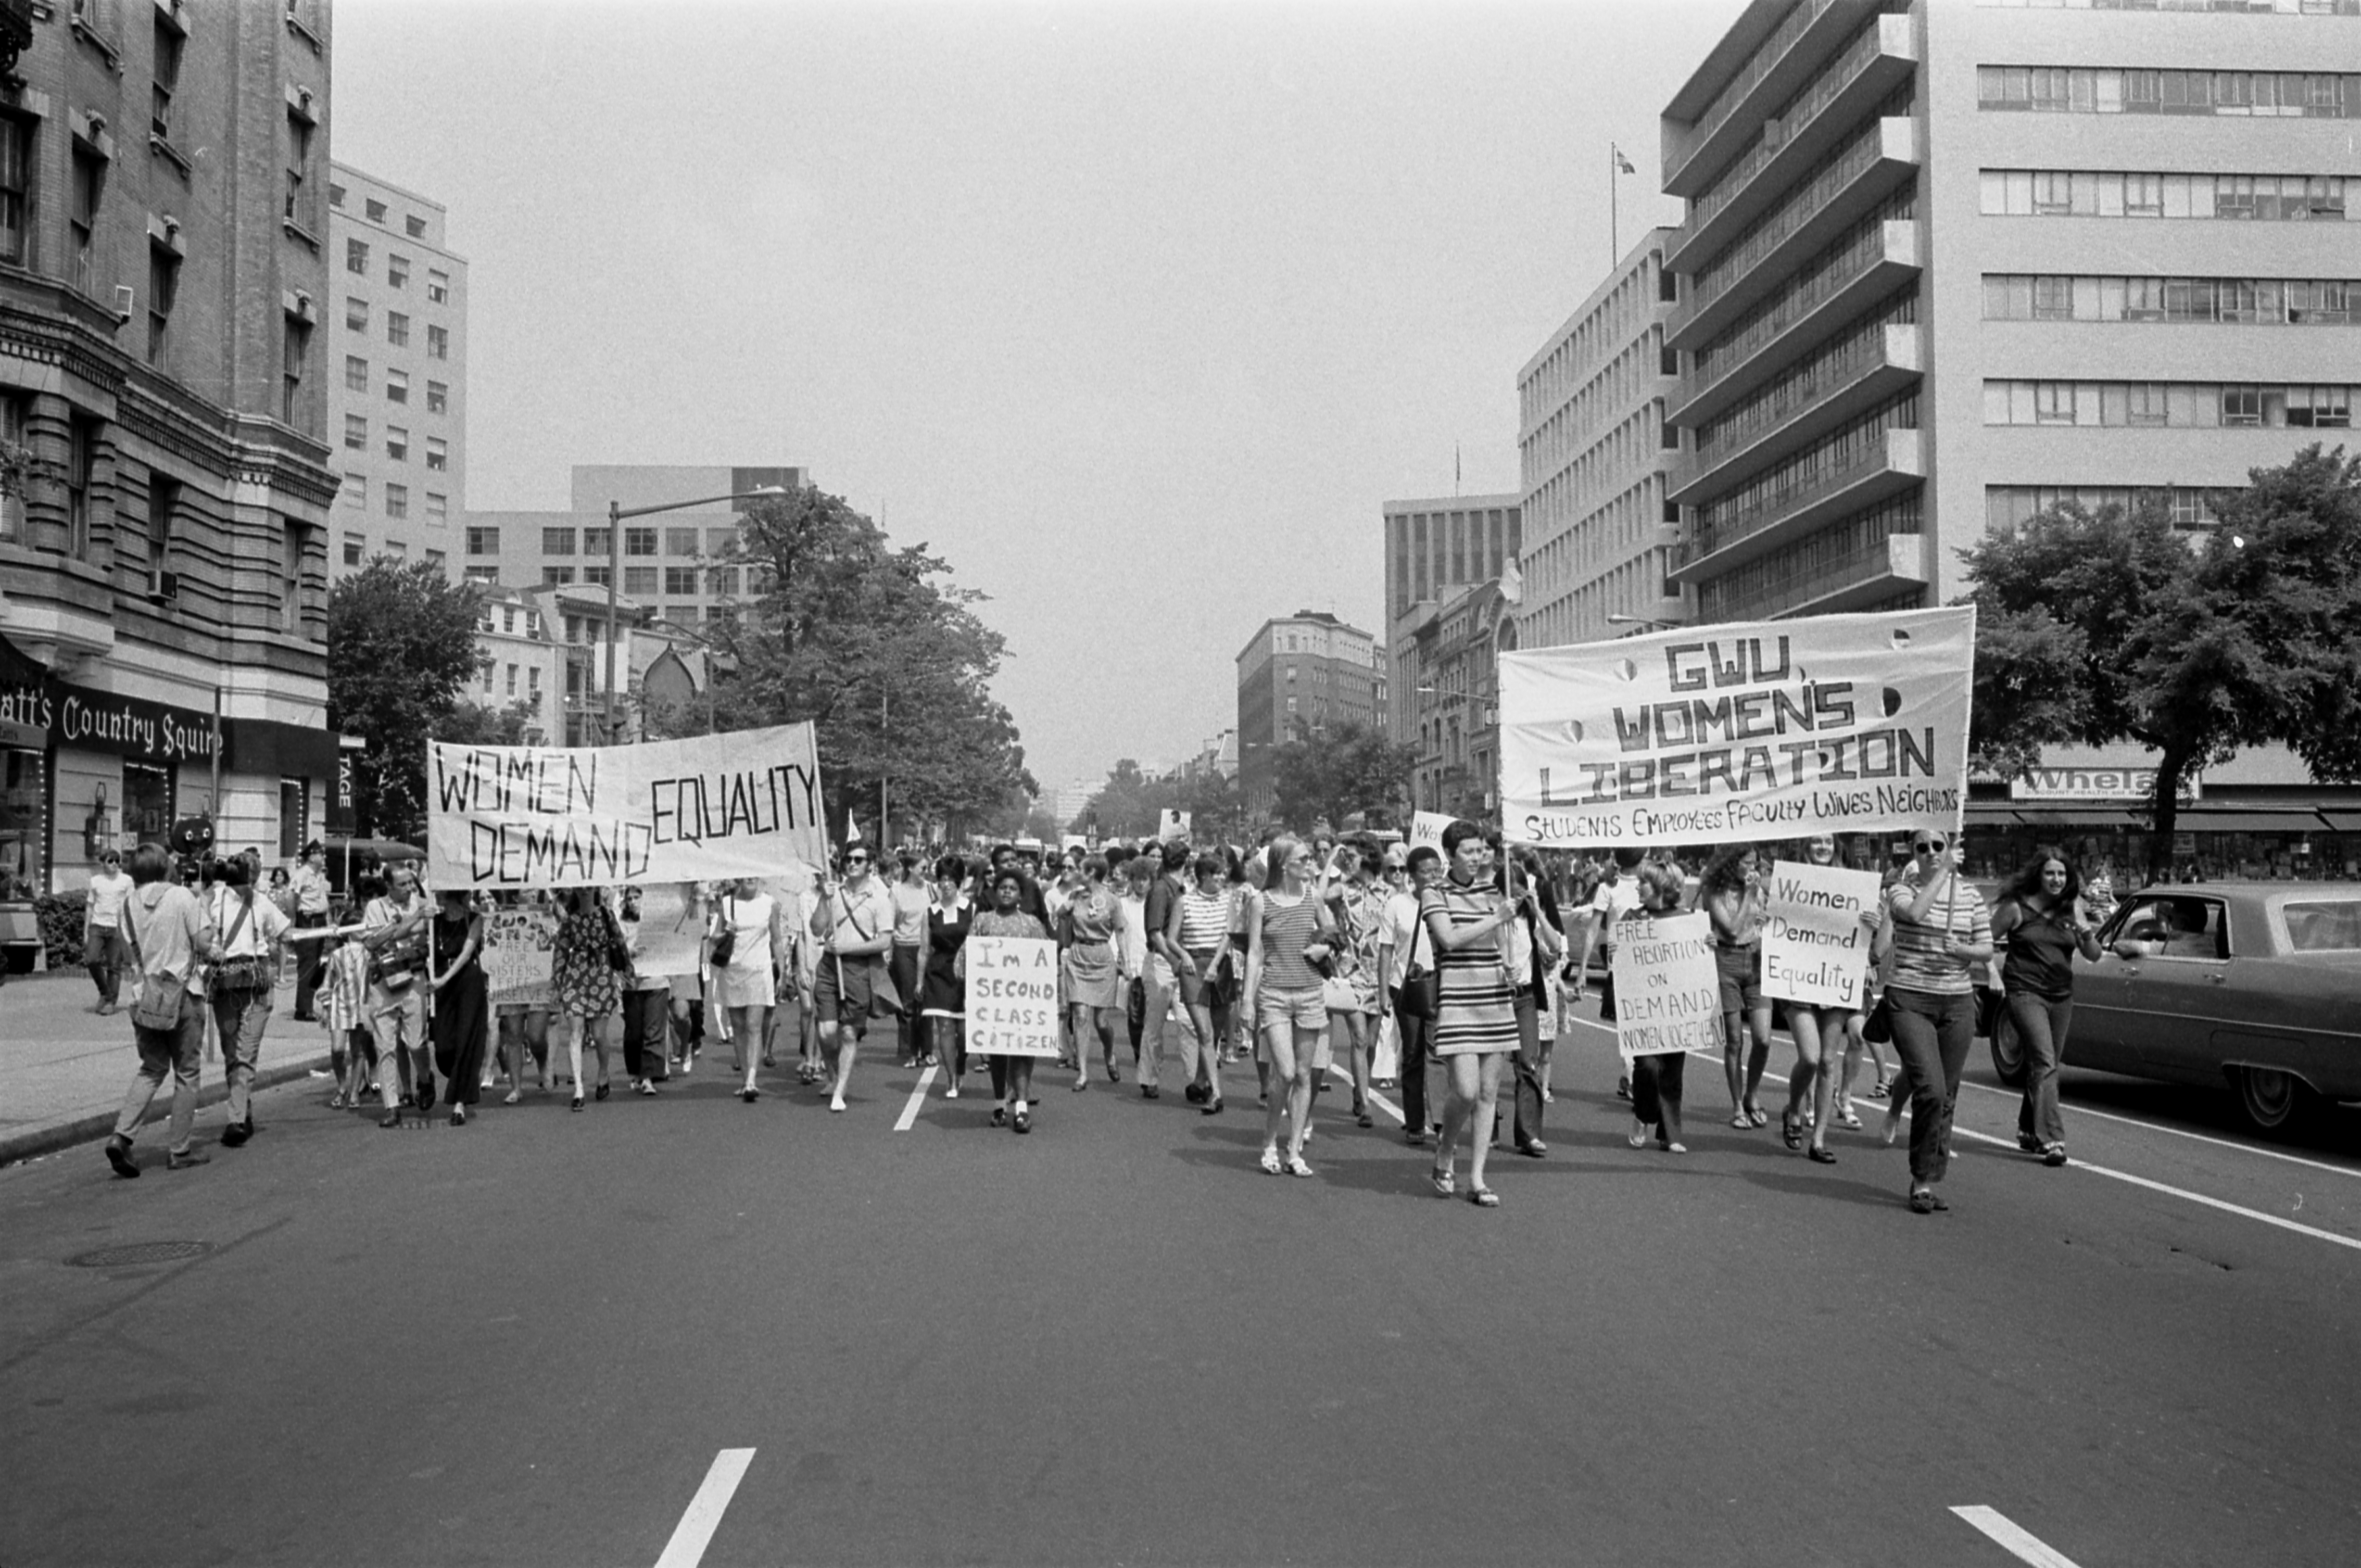 black radicalism and the social unrest on campuses in america during the 60s Apush sem 2 study • over half of all black americans lived in south how did the civil rights movement evolve during the 60s - black power.